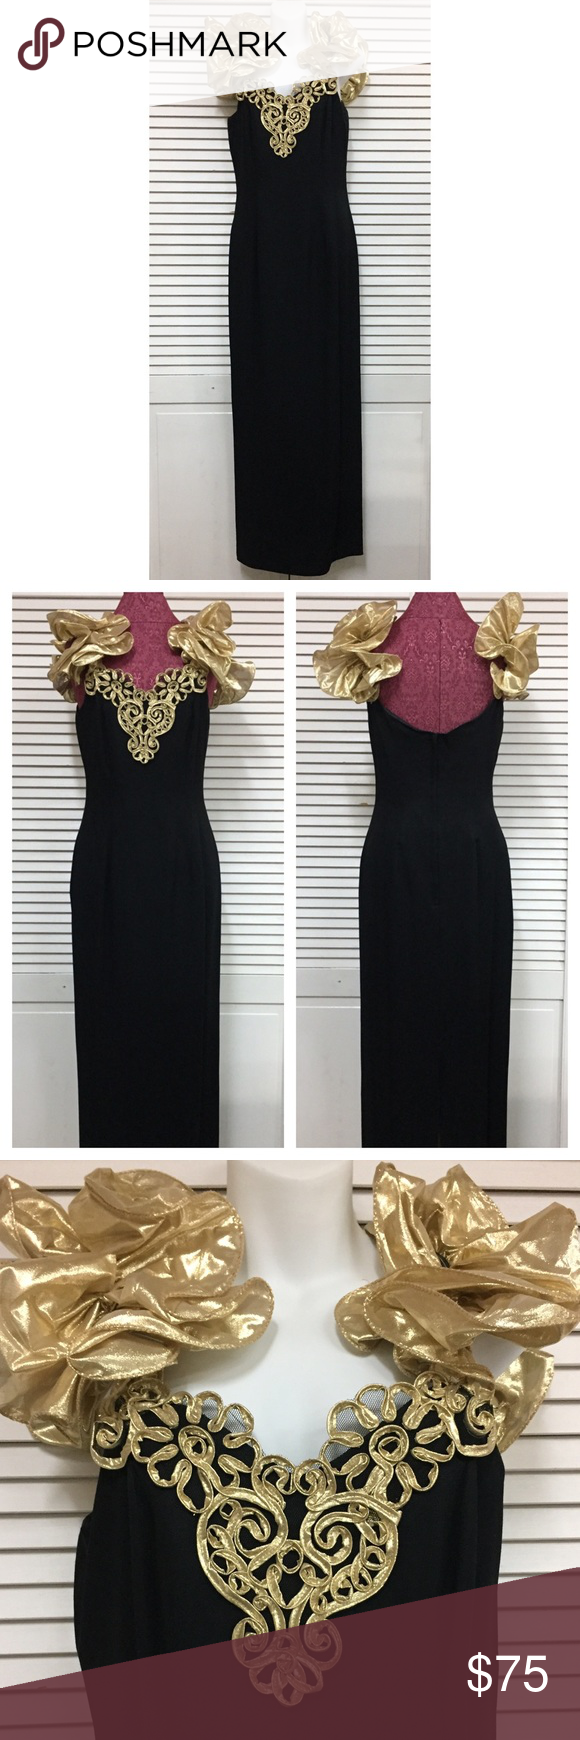 S vintage formal gownprom dress looks never worn size